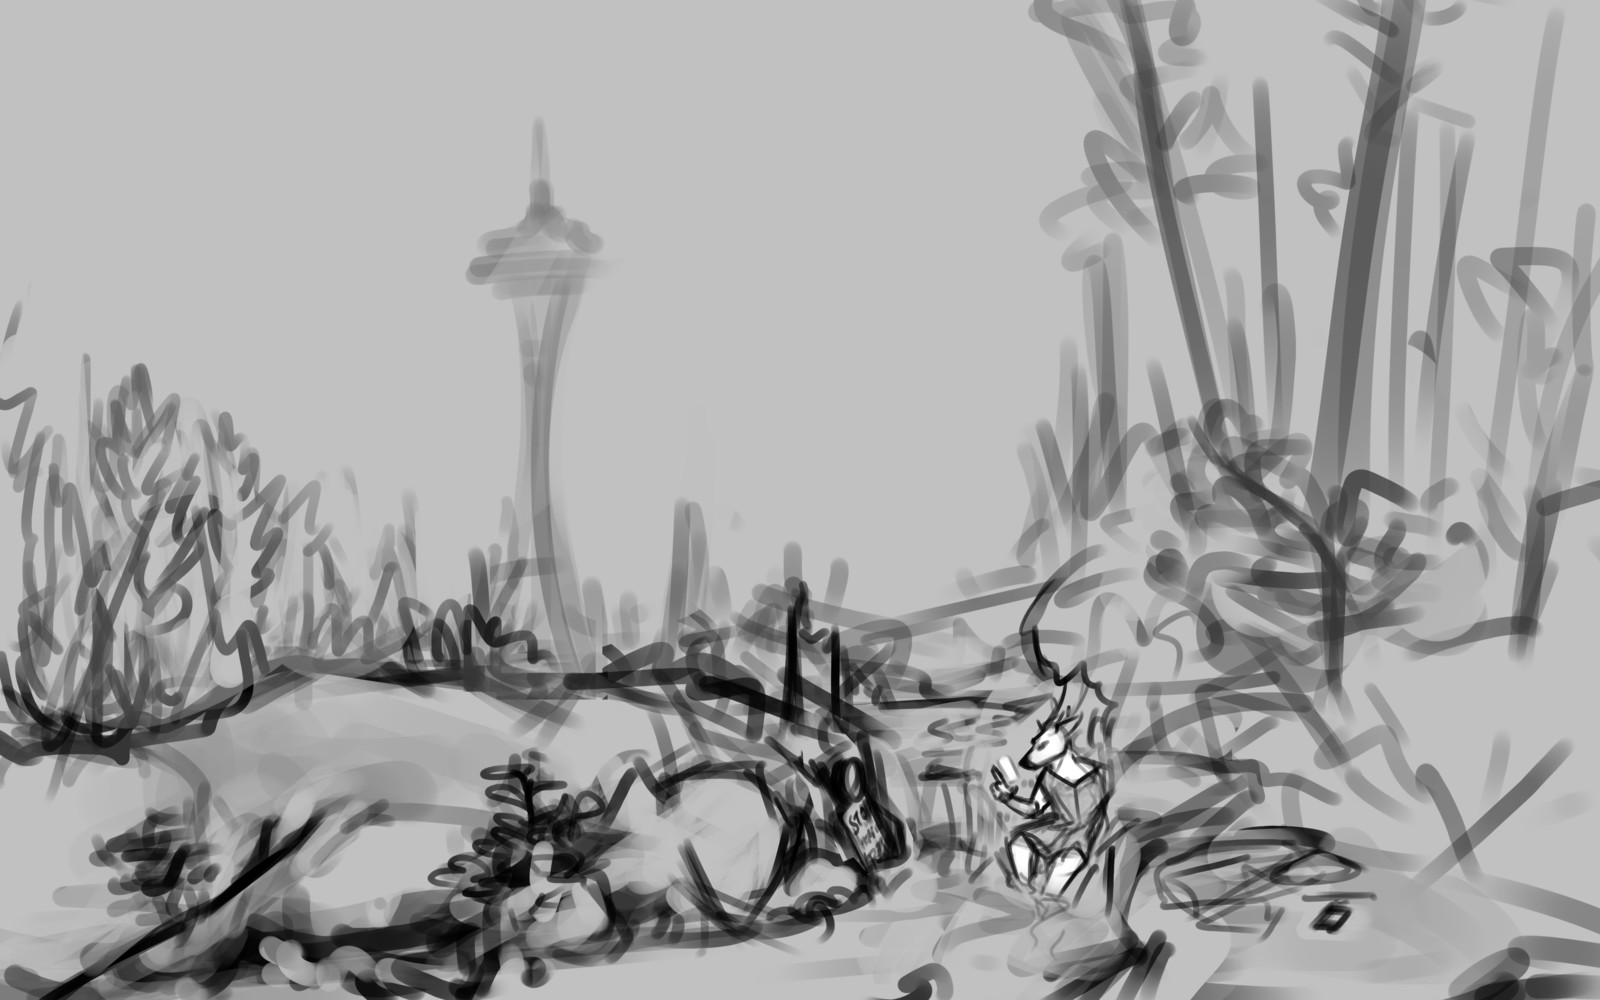 The original concept sketch made in December 2016. Traveler (the deer) was on her phone instead of playing the violin. The referenced location of the scene was along the Alaskan Way Viaduct, just before passing under 1st Avenue.